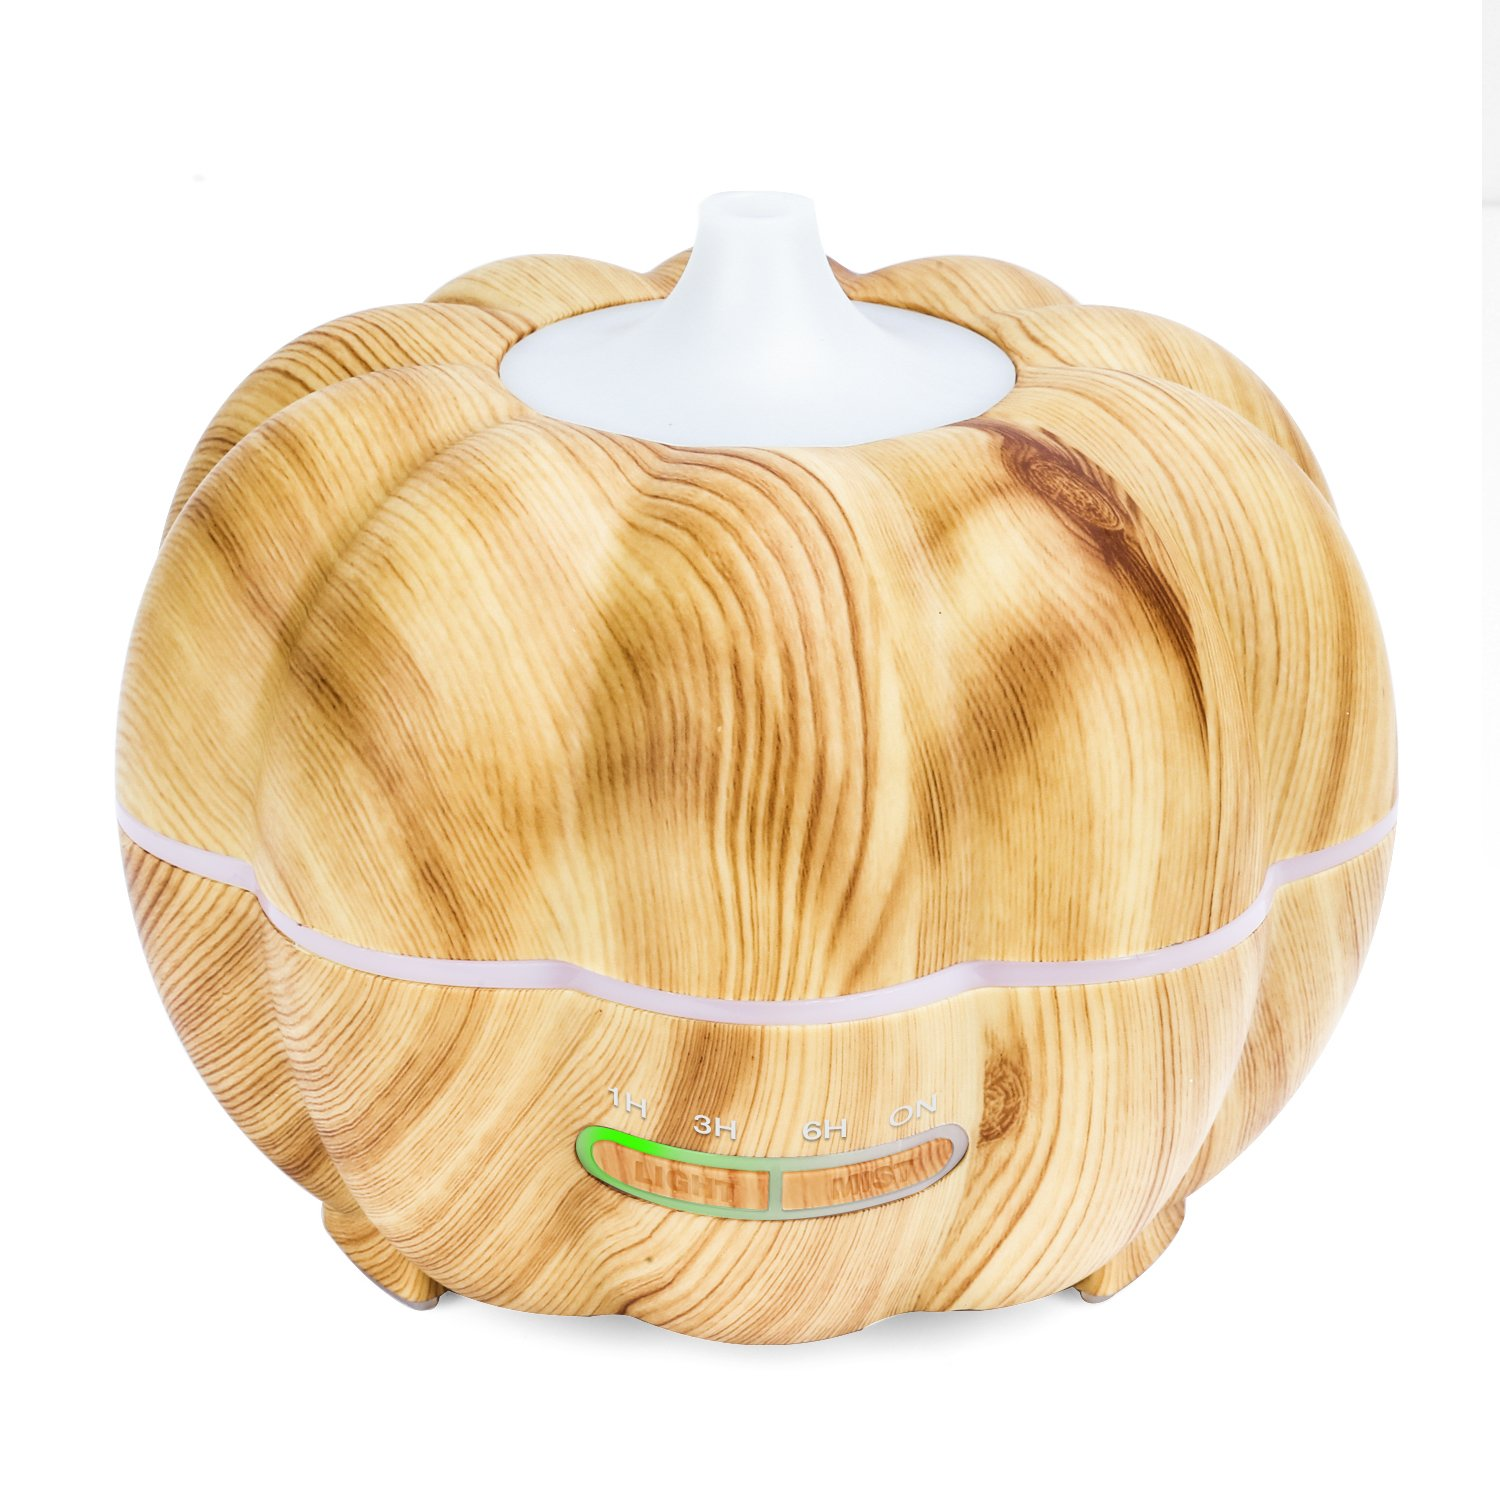 MoKo 300ML Ultrasonic Air Humidifier, Pumpkin Aromatherapy Essential Oil Diffuser with Warm White Night Light Waterless Auto-Off for Office Home Bedroom Room Study Yoga Spa - Wood Color